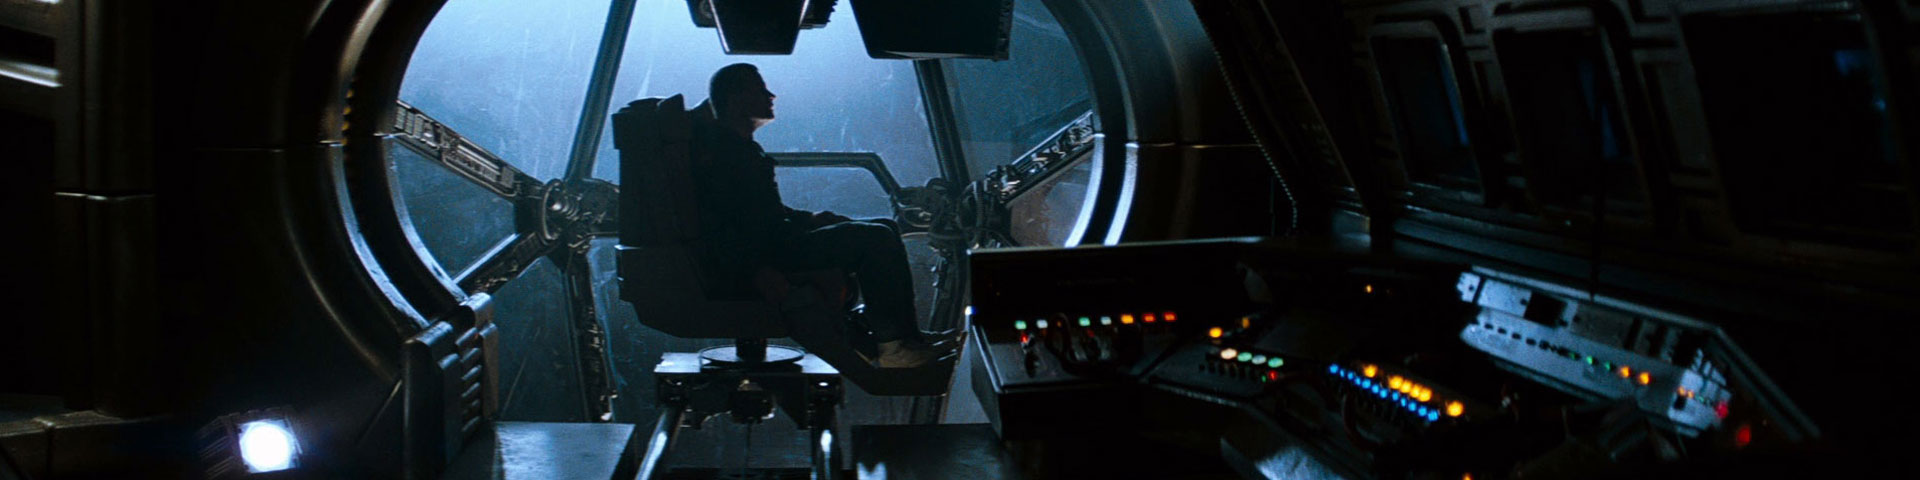 A lone individual sits in an observation bubble on a starship, surrounded by dingy, beat-up computer equipment.